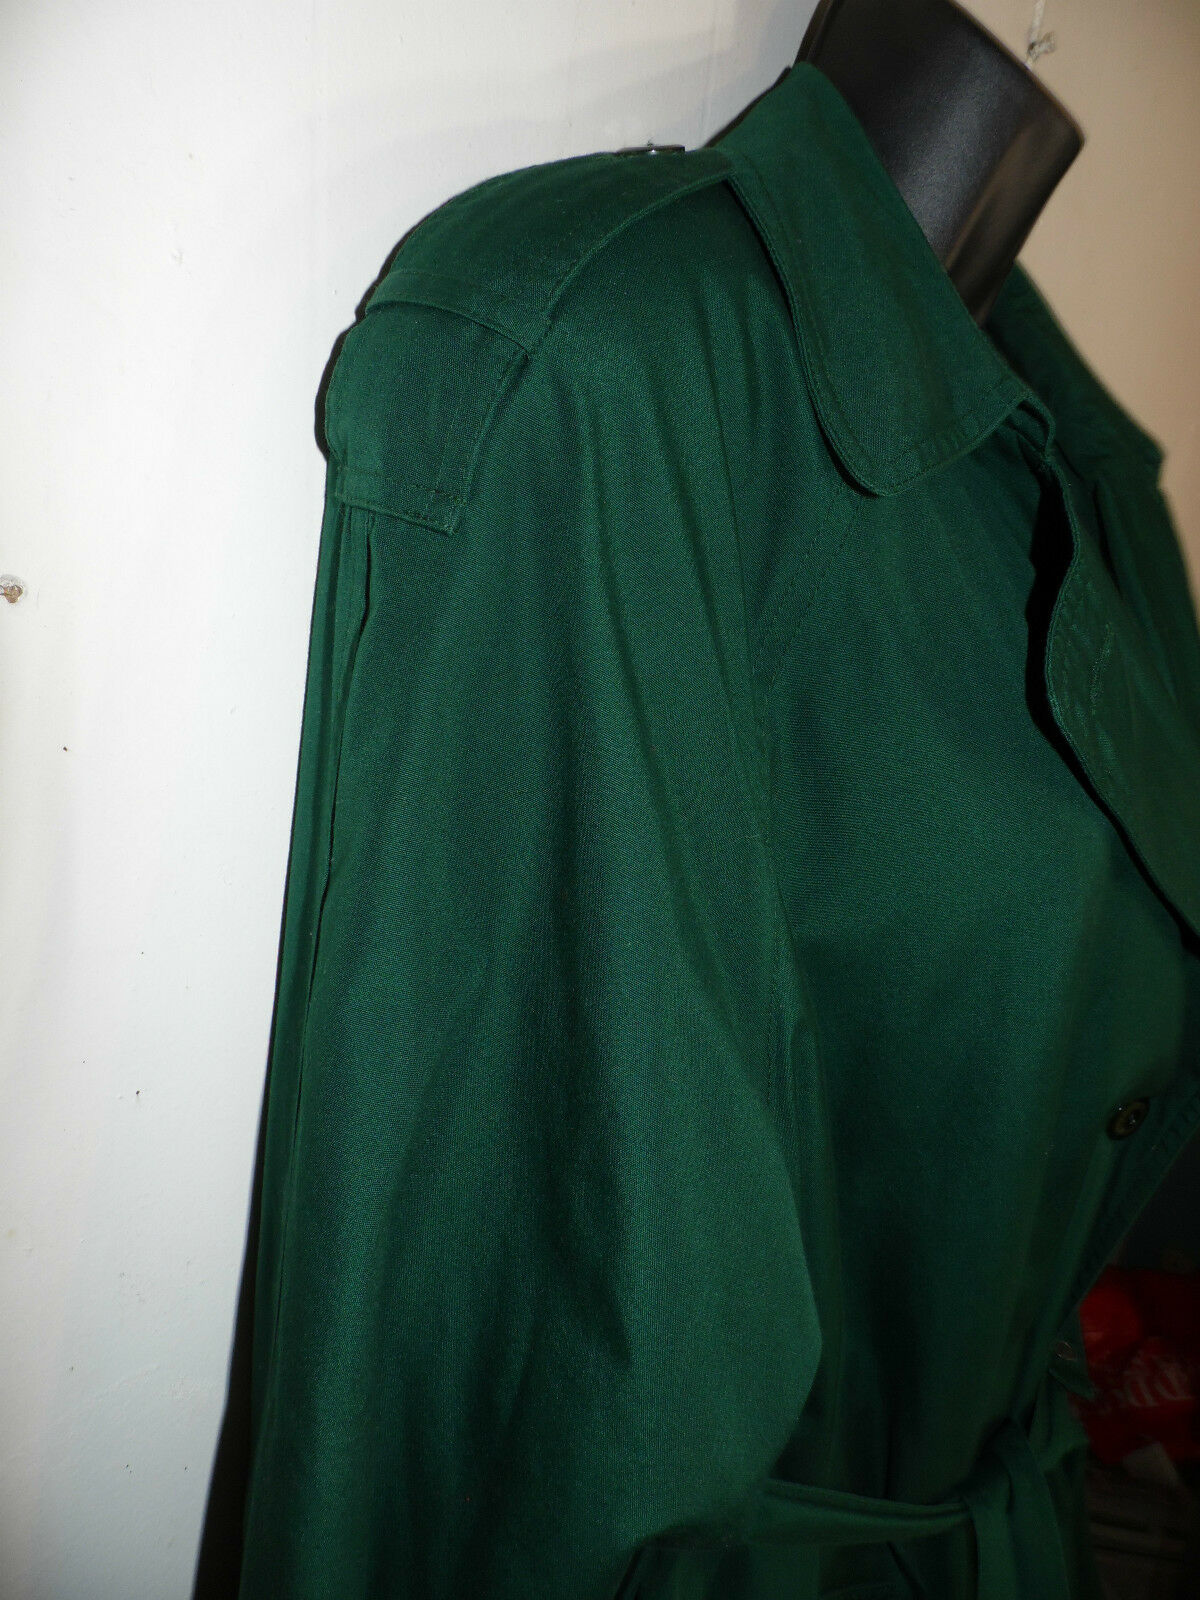 F.S.L. Trench Coat Deep Deep Deep Green 10 P Petite  Removable Lining Double Breasted e7bd79